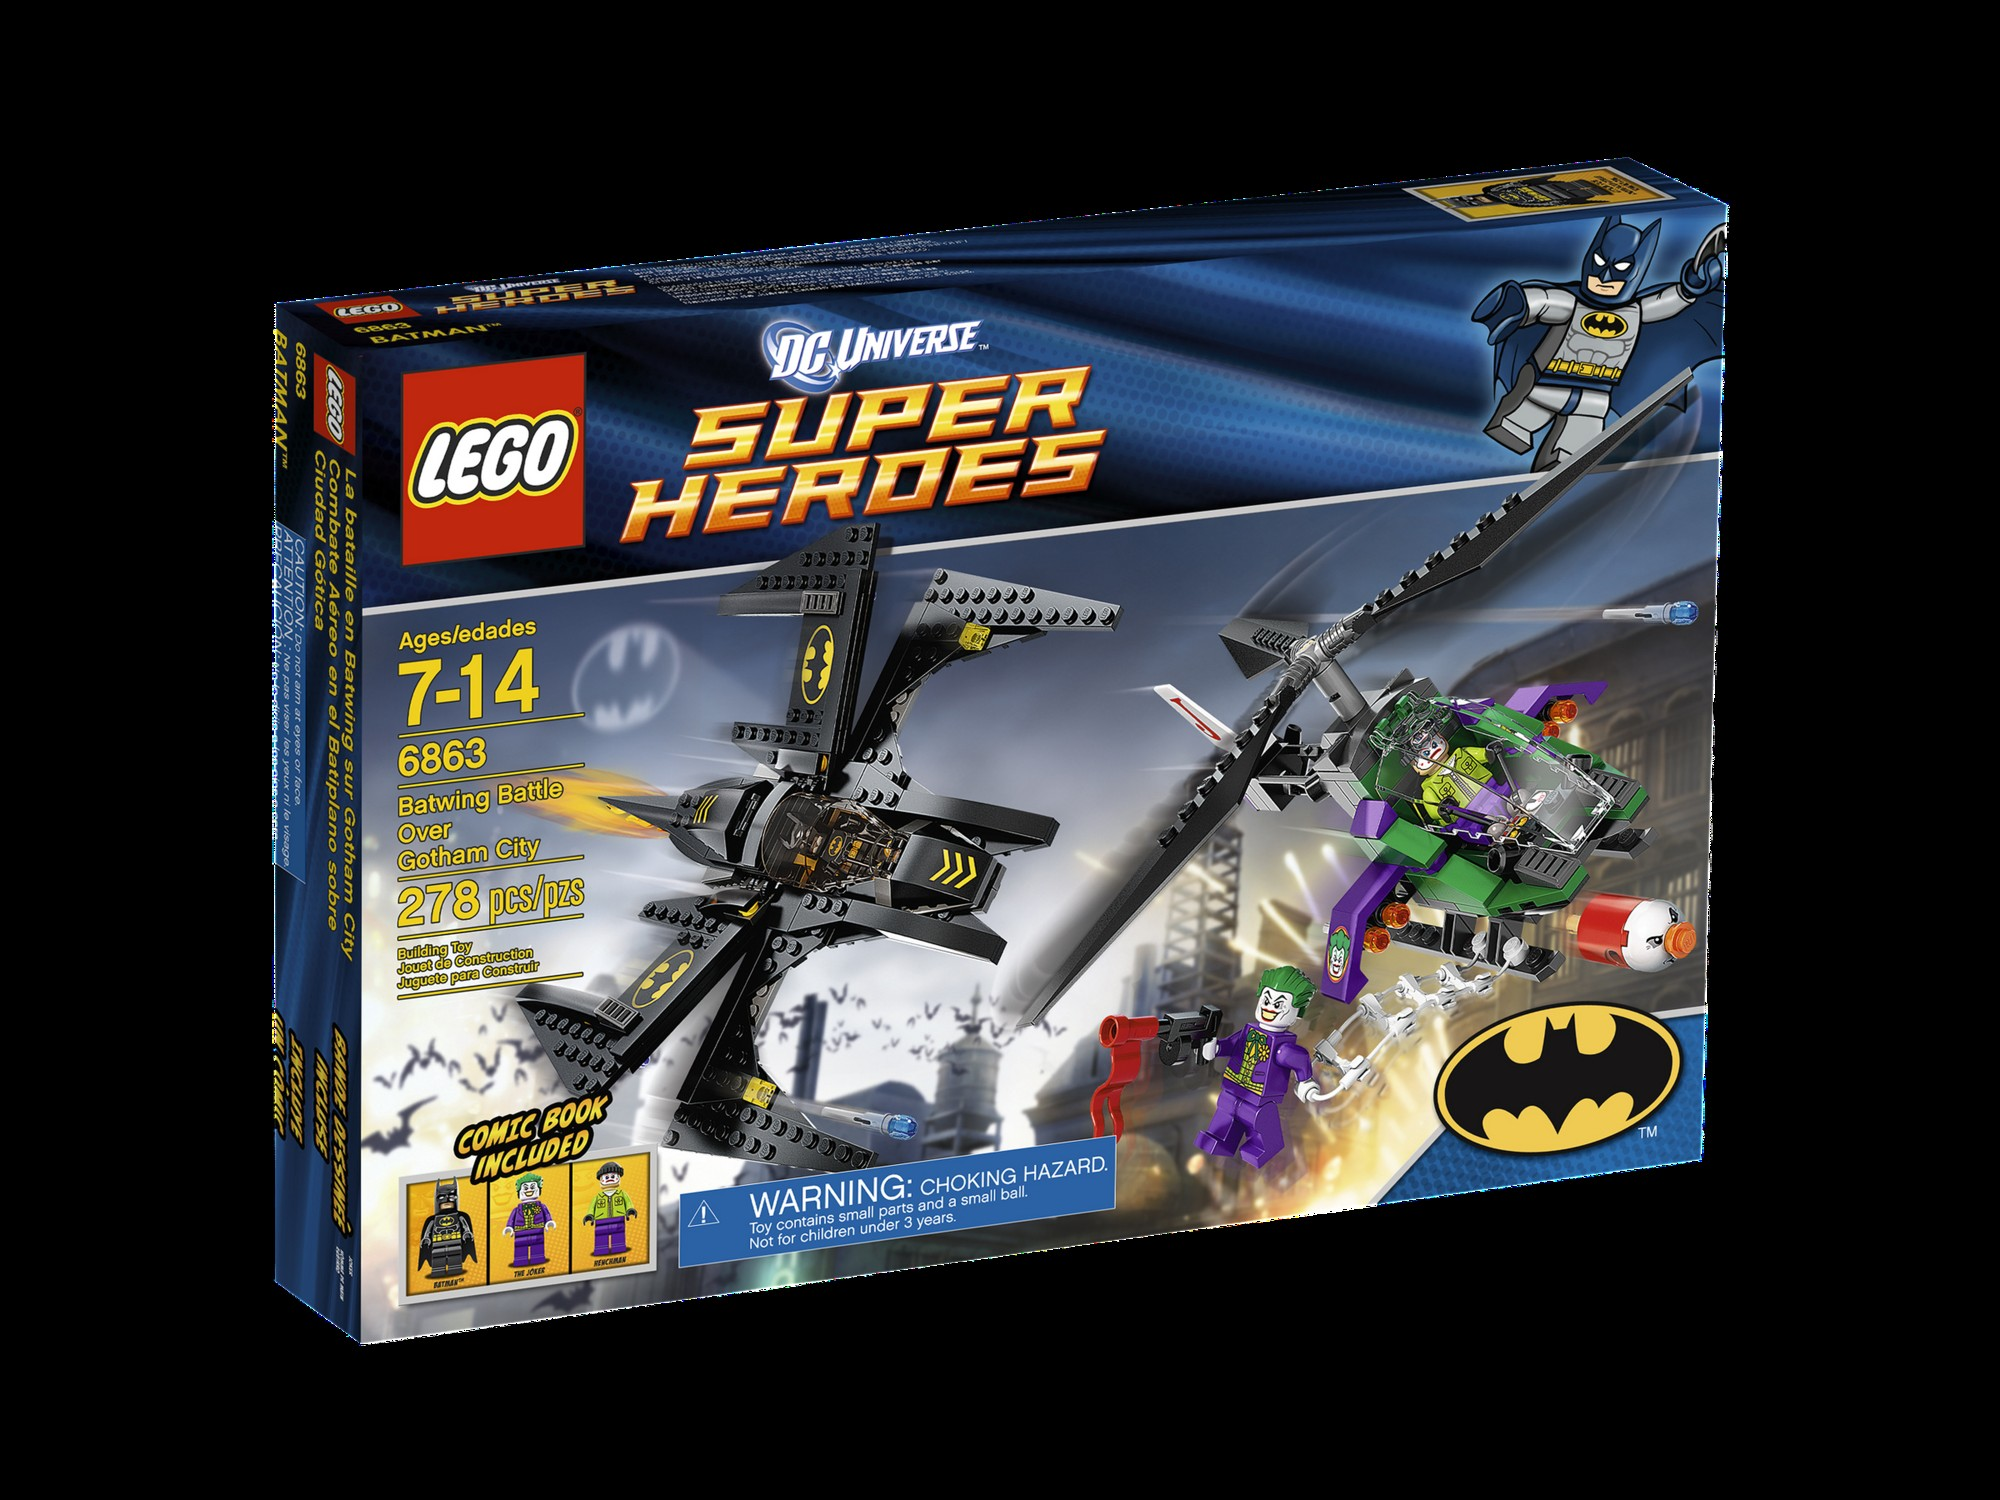 Lego March Calendar Más Recientemente Liberado Review 6863 Batwing Battle Over Gotham City Brickipedia Of Lego March Calendar Más Actual 9 Best Up Ing Kids Programs Images On Pinterest